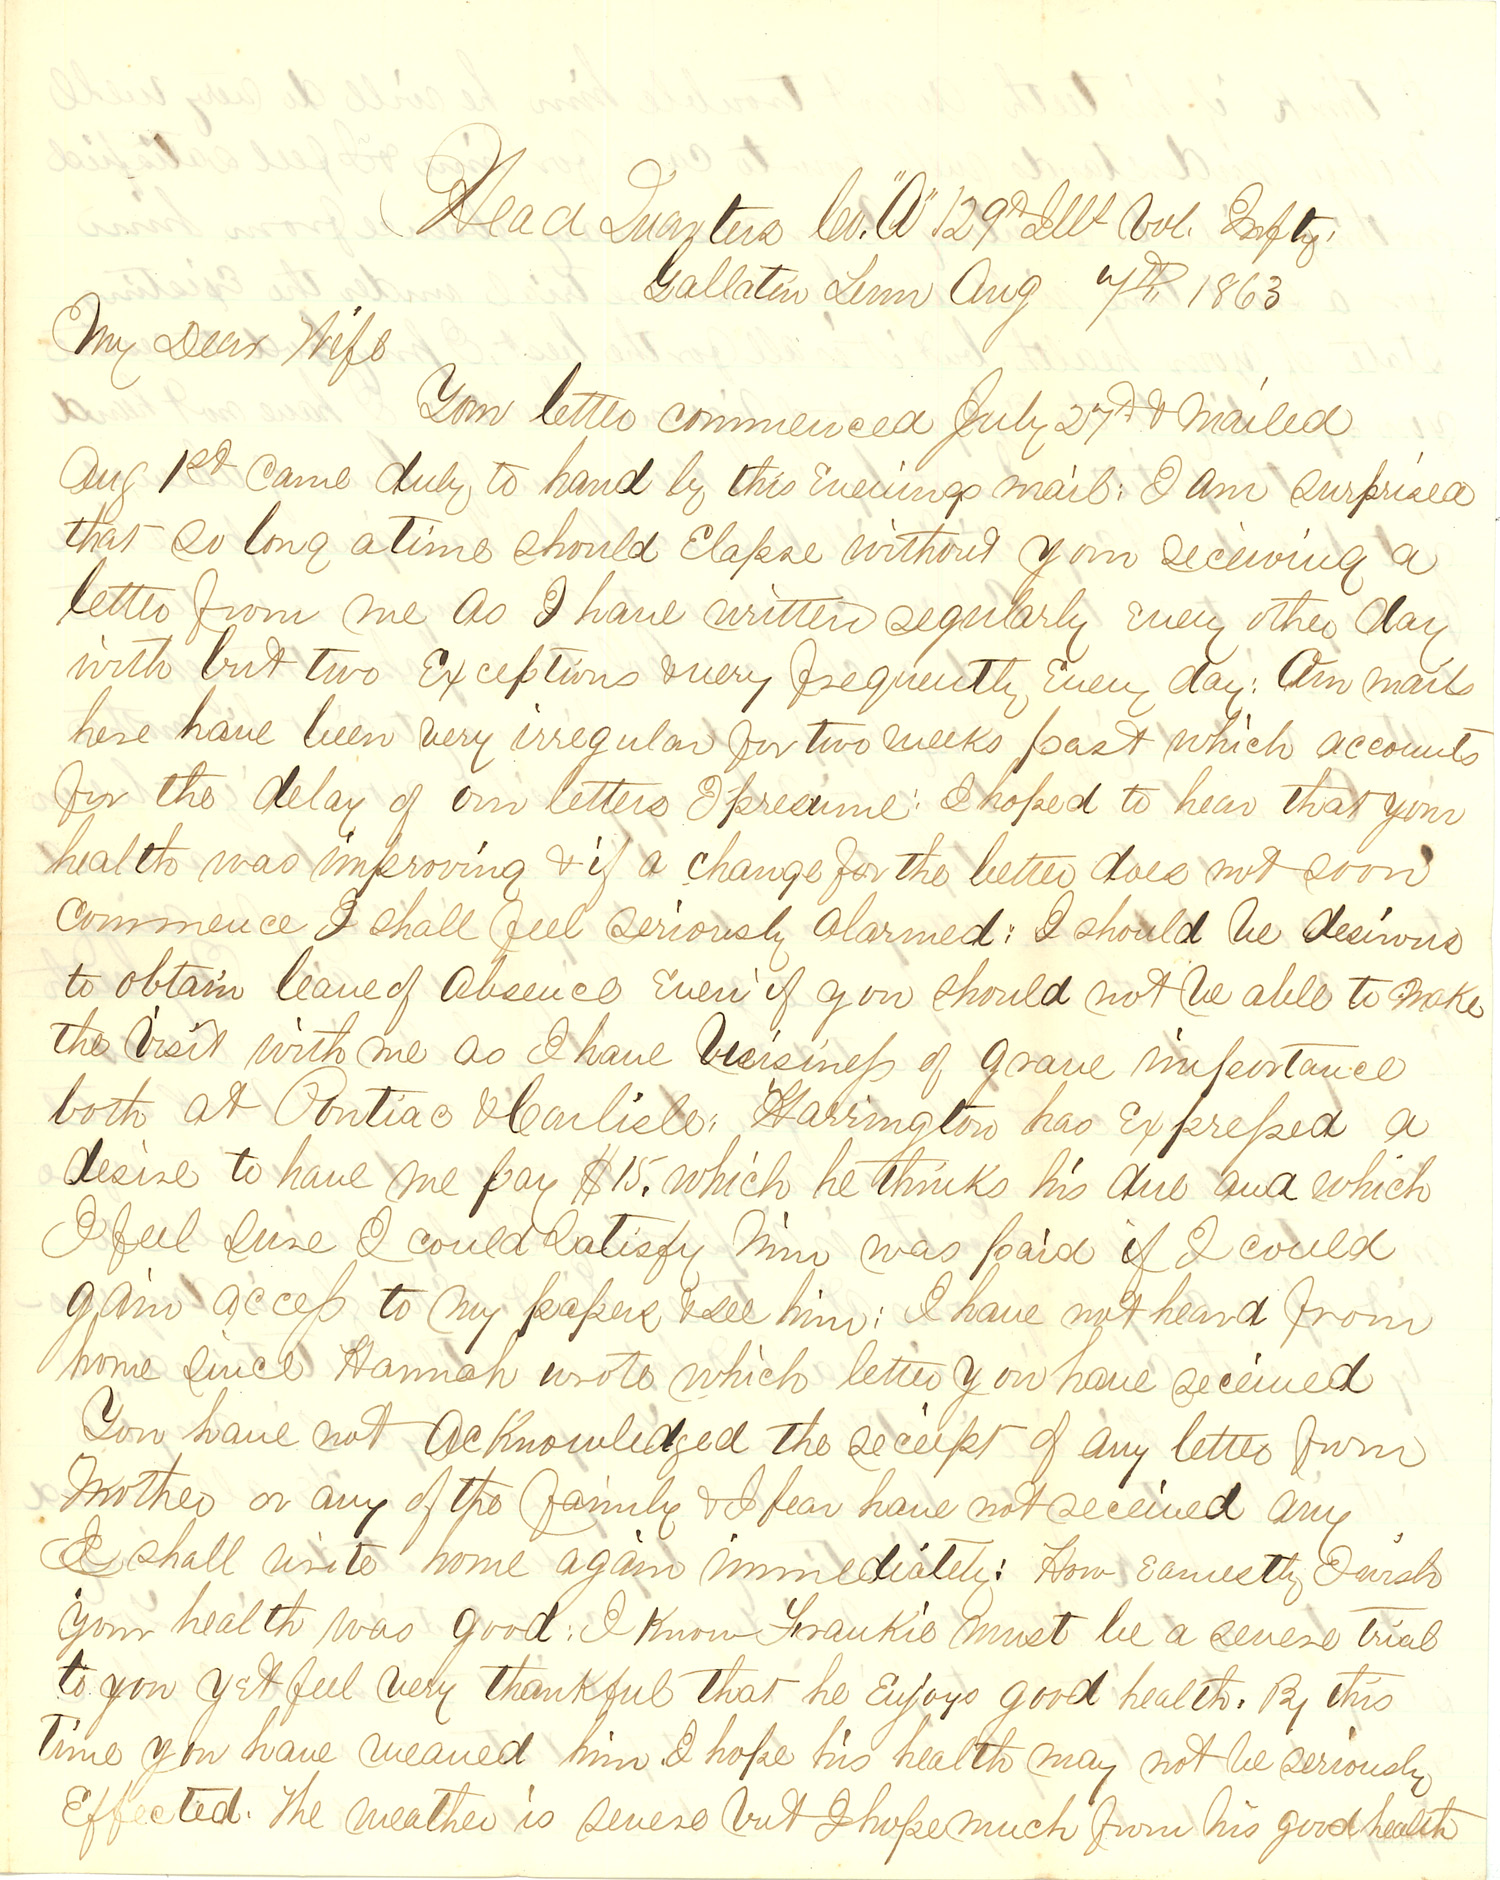 Joseph Culver Letter, August 7, 1863, Page 1